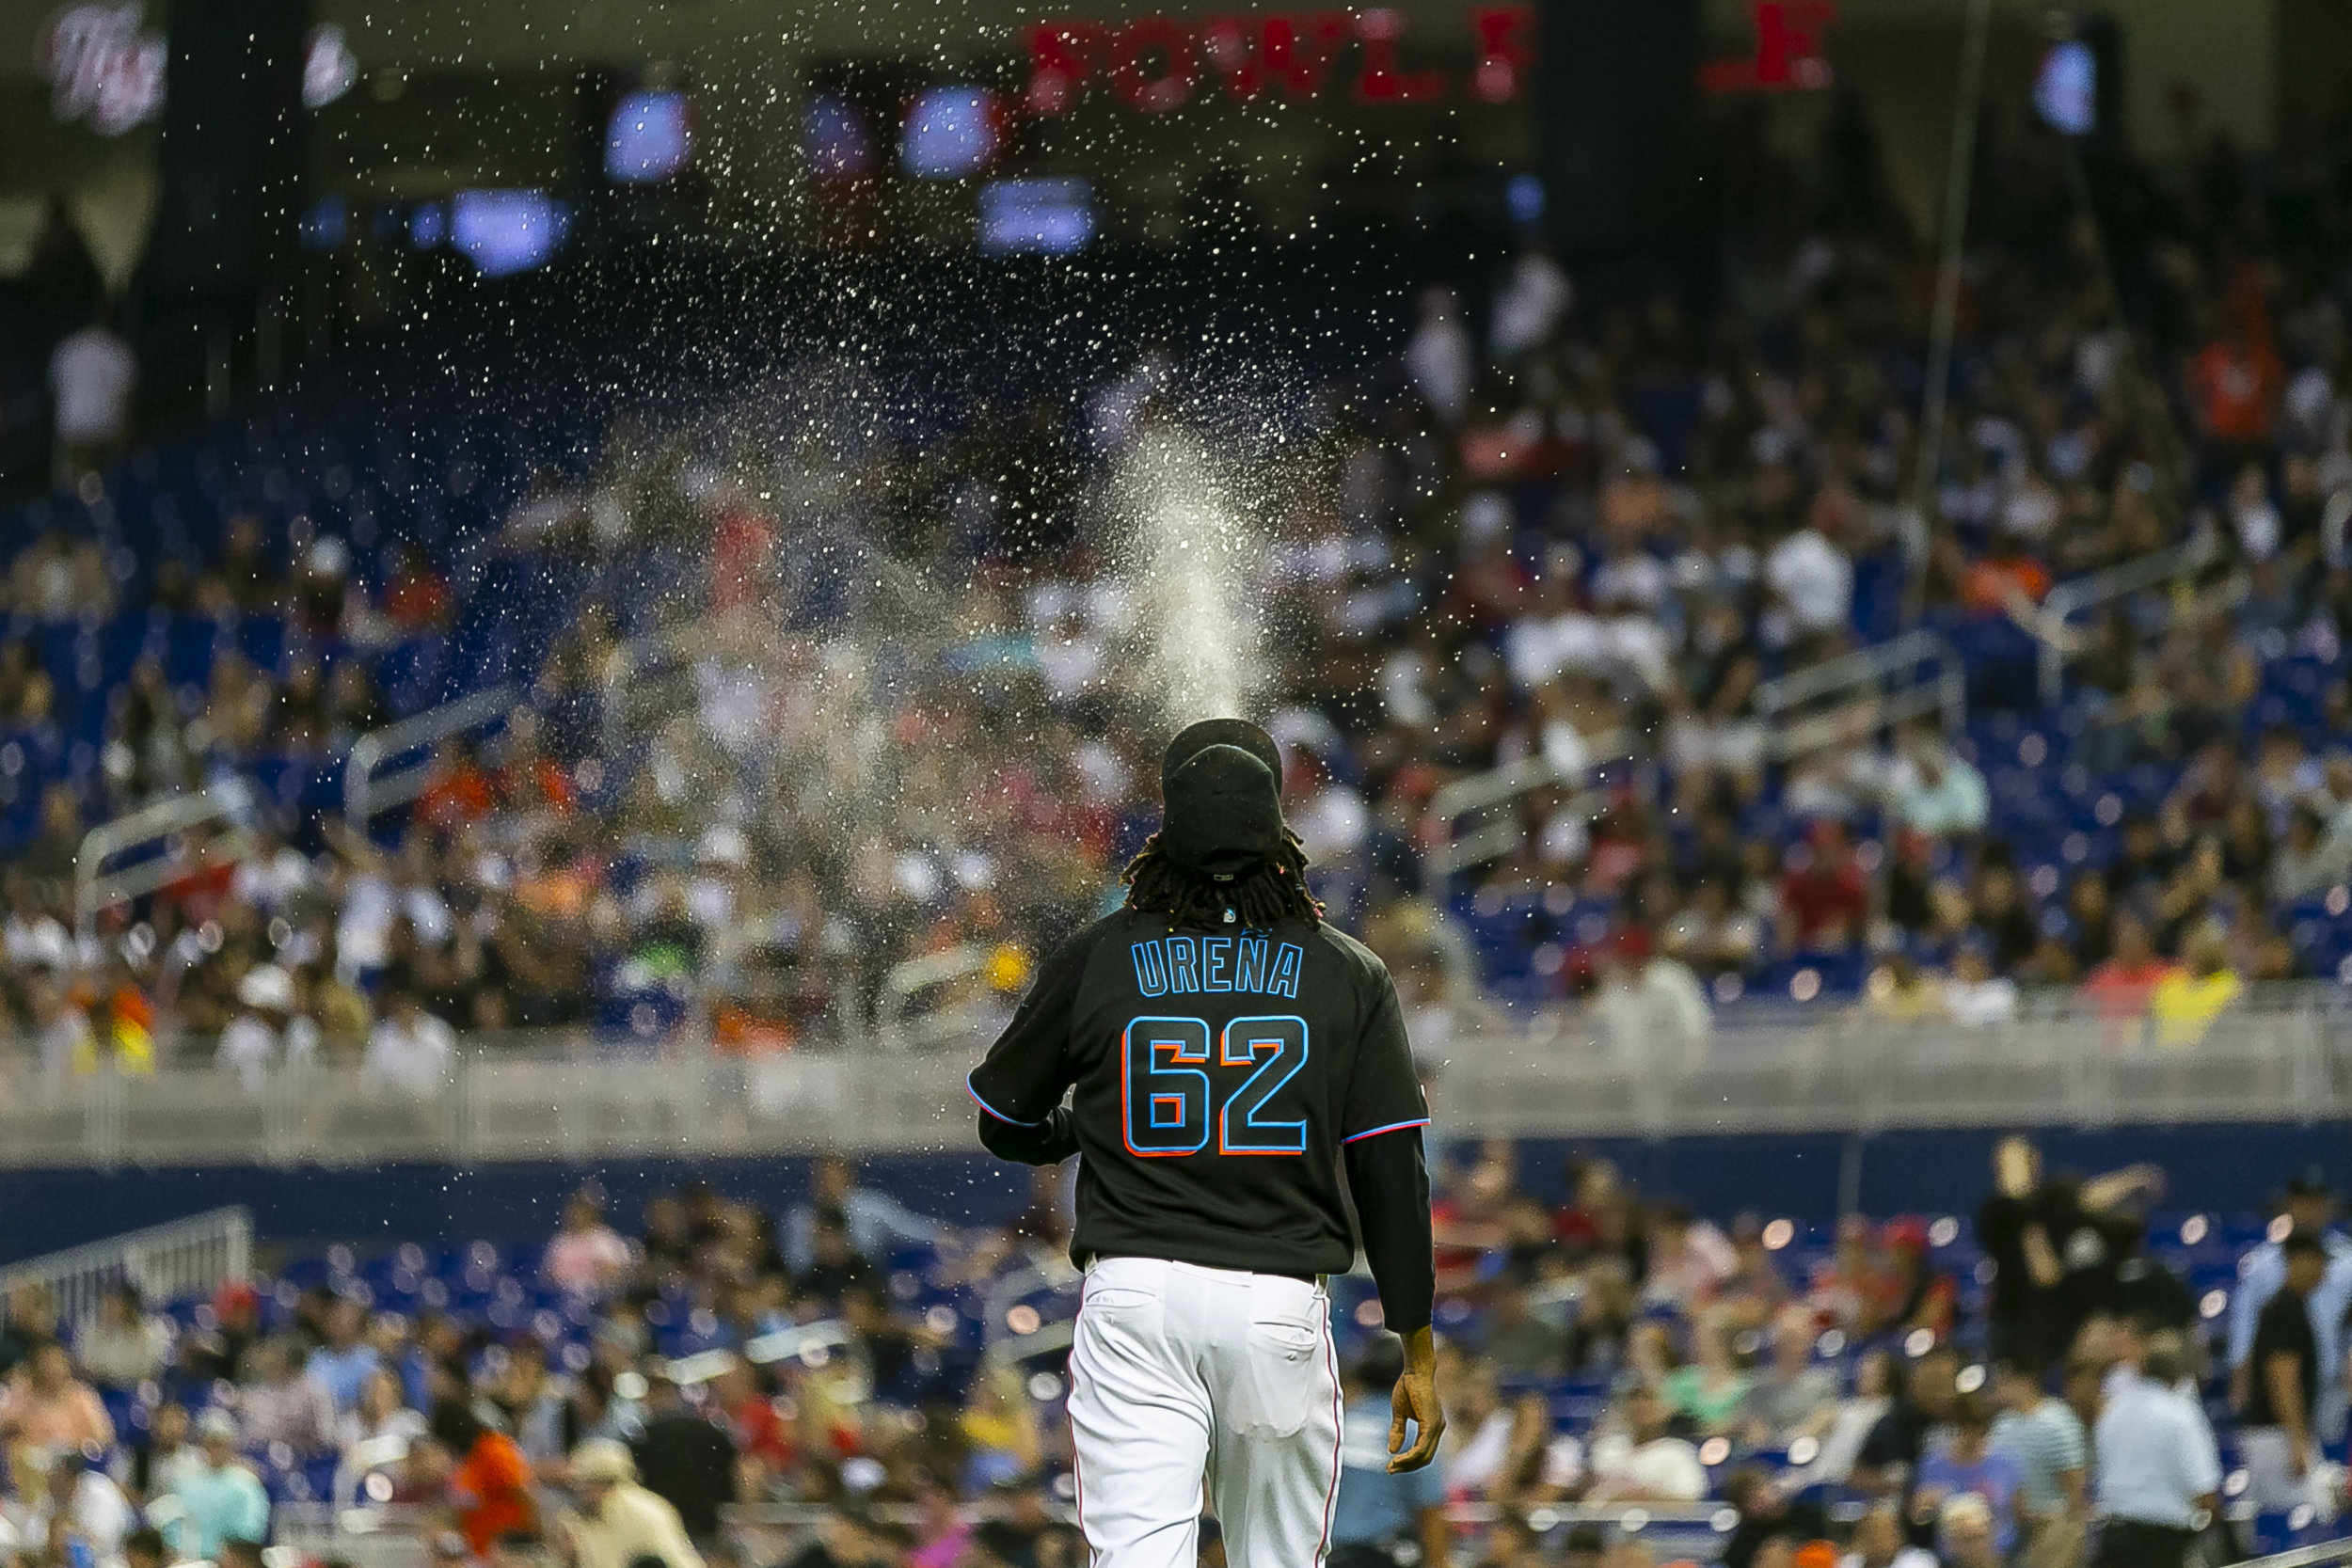 Miami Marlins starting pitcher Jose Urena (62) walks toward the pitching mound in the sixth inning of a baseball game against the Washington Nationals at Marlins Park in Miami on Saturday, April 20, 2019.